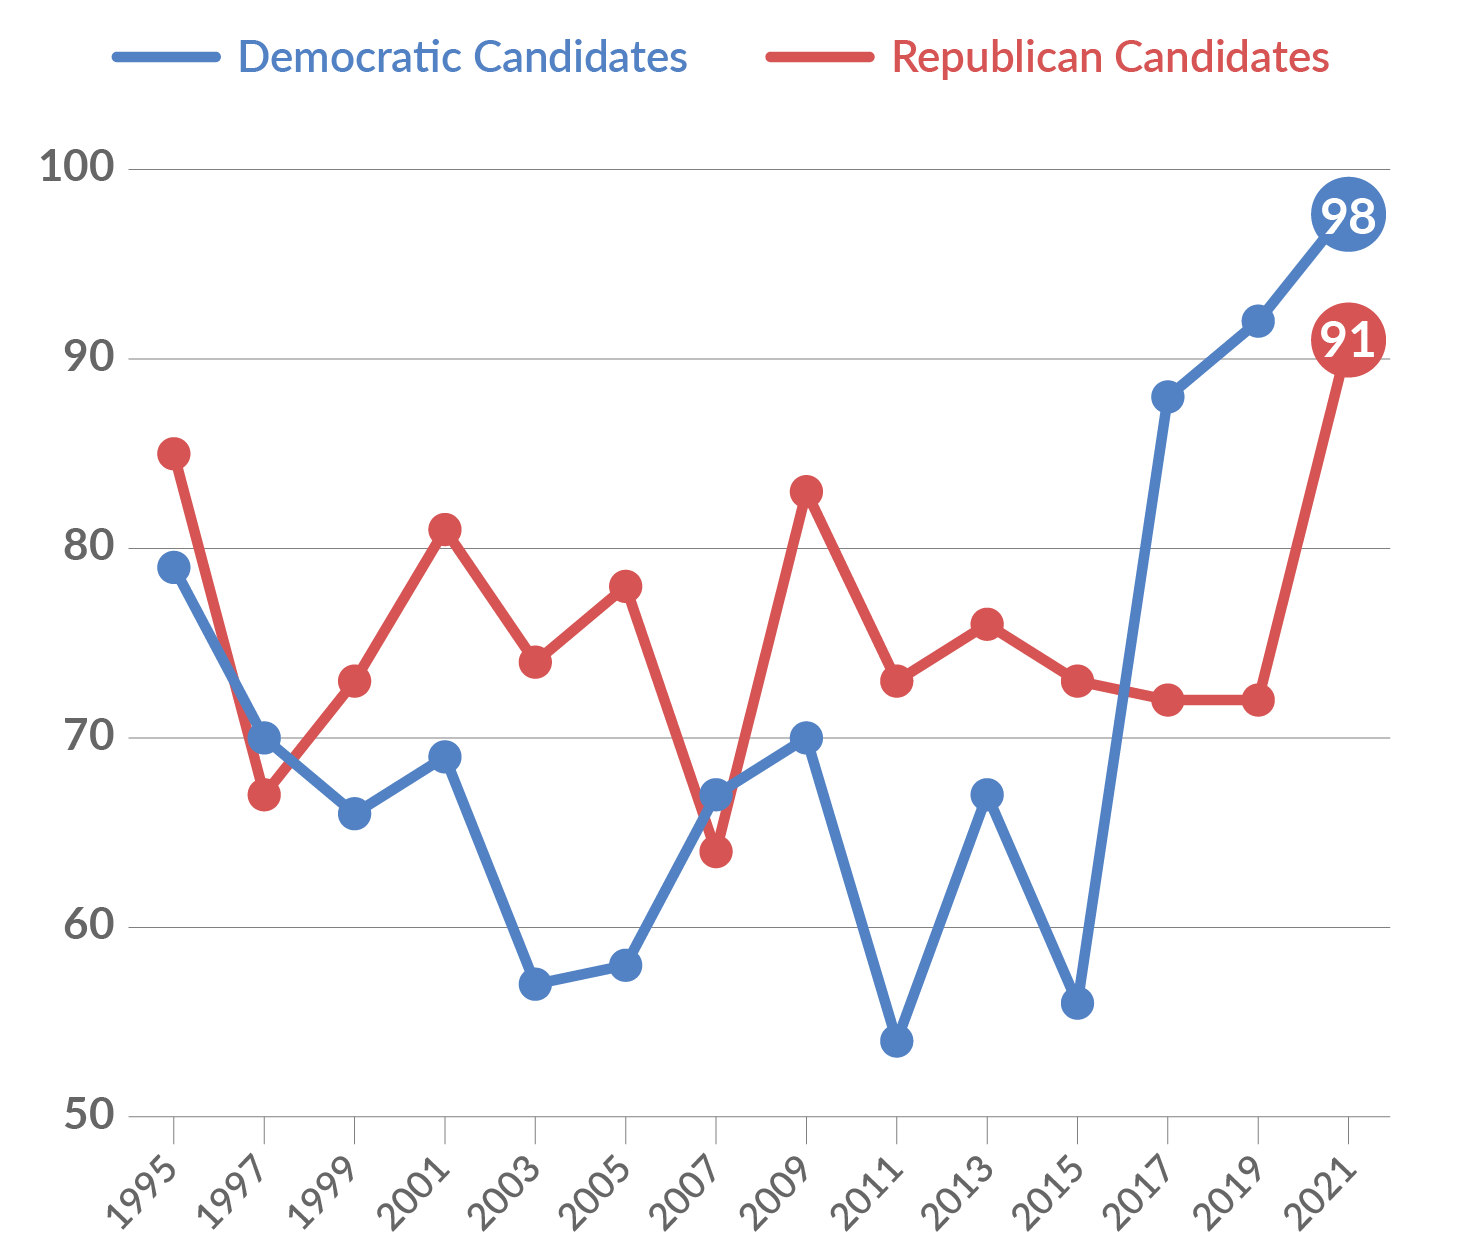 Line chart showing number of house candidates per year with 2021 having record high numbers of candidates